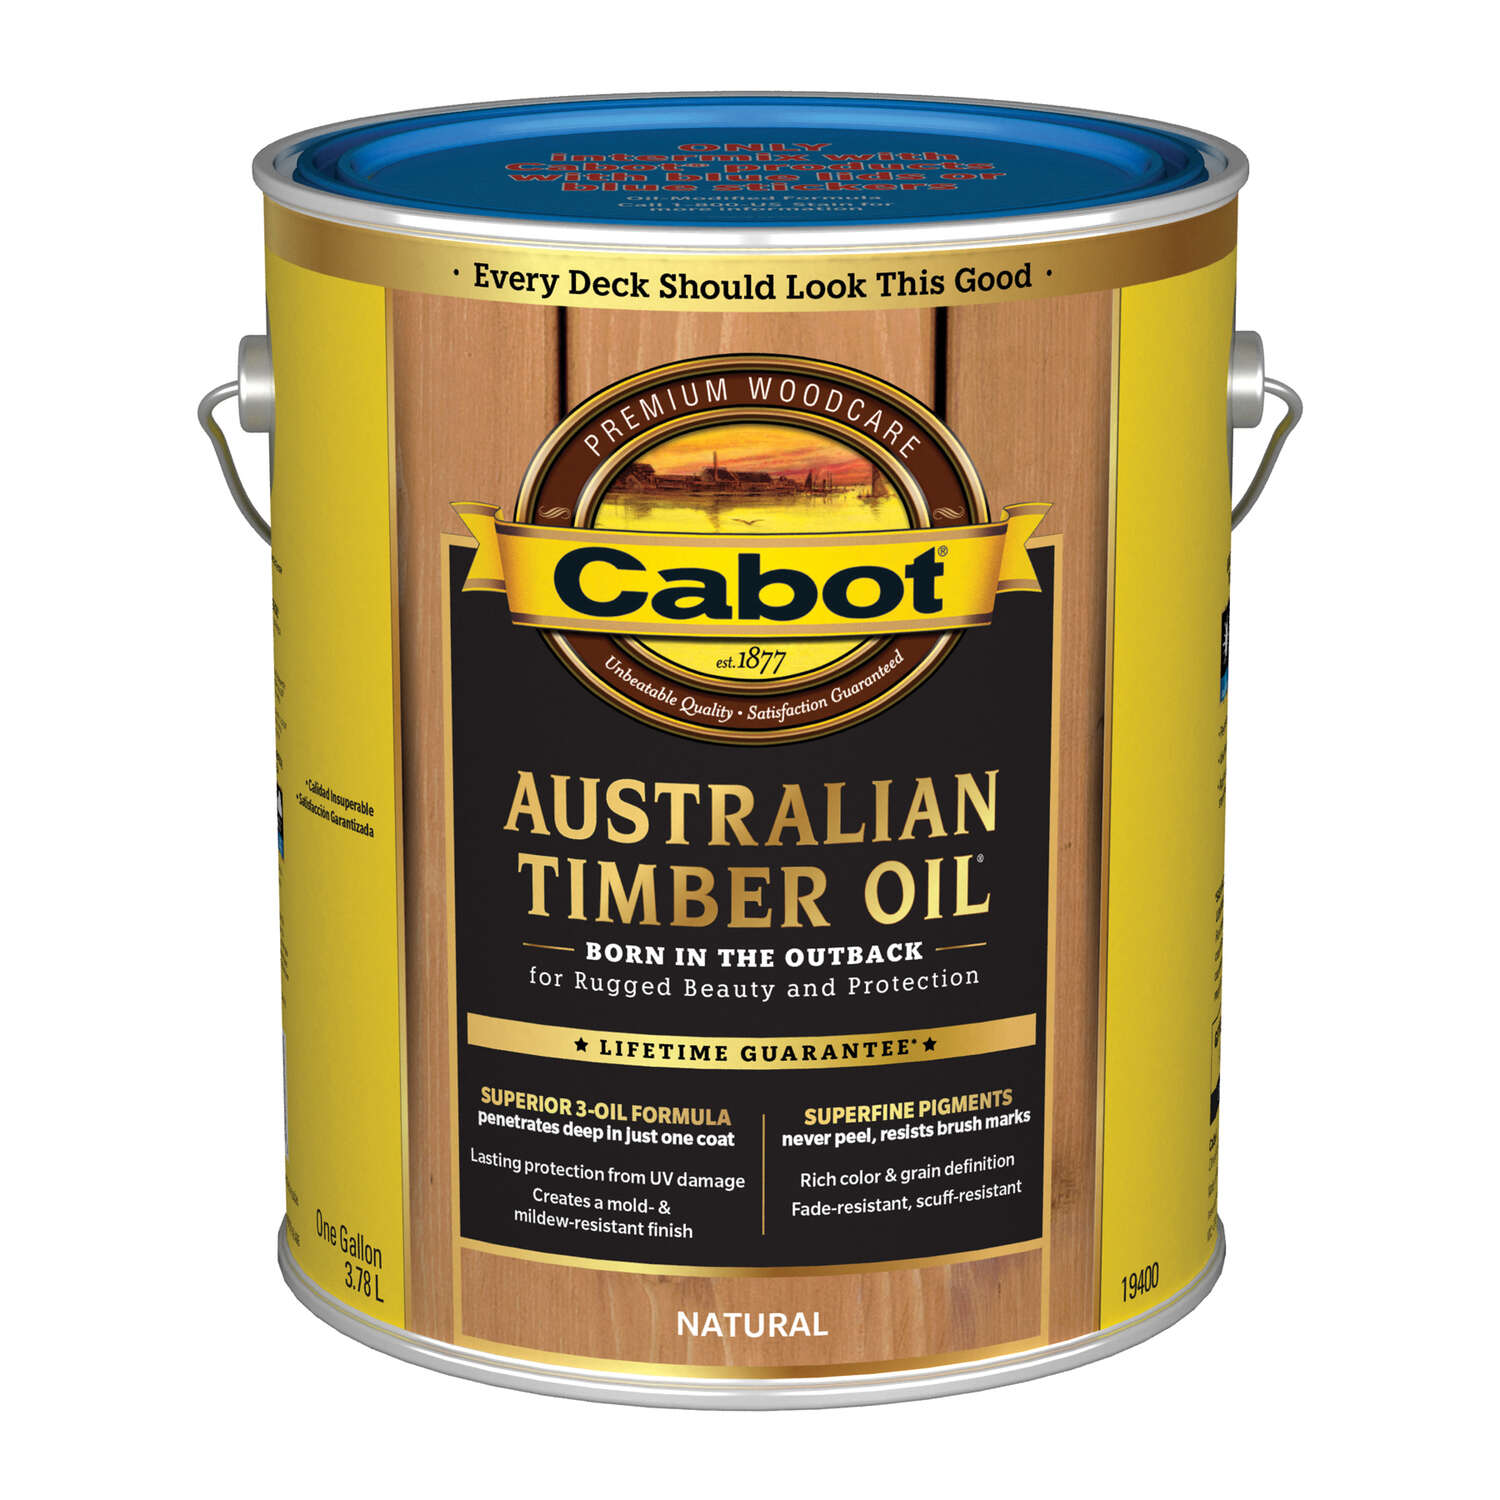 Cabot  Transparent  Neutral  Oil-Based  Natural Oil/Waterborne Hybrid  Australian Timber Oil  1 gal.